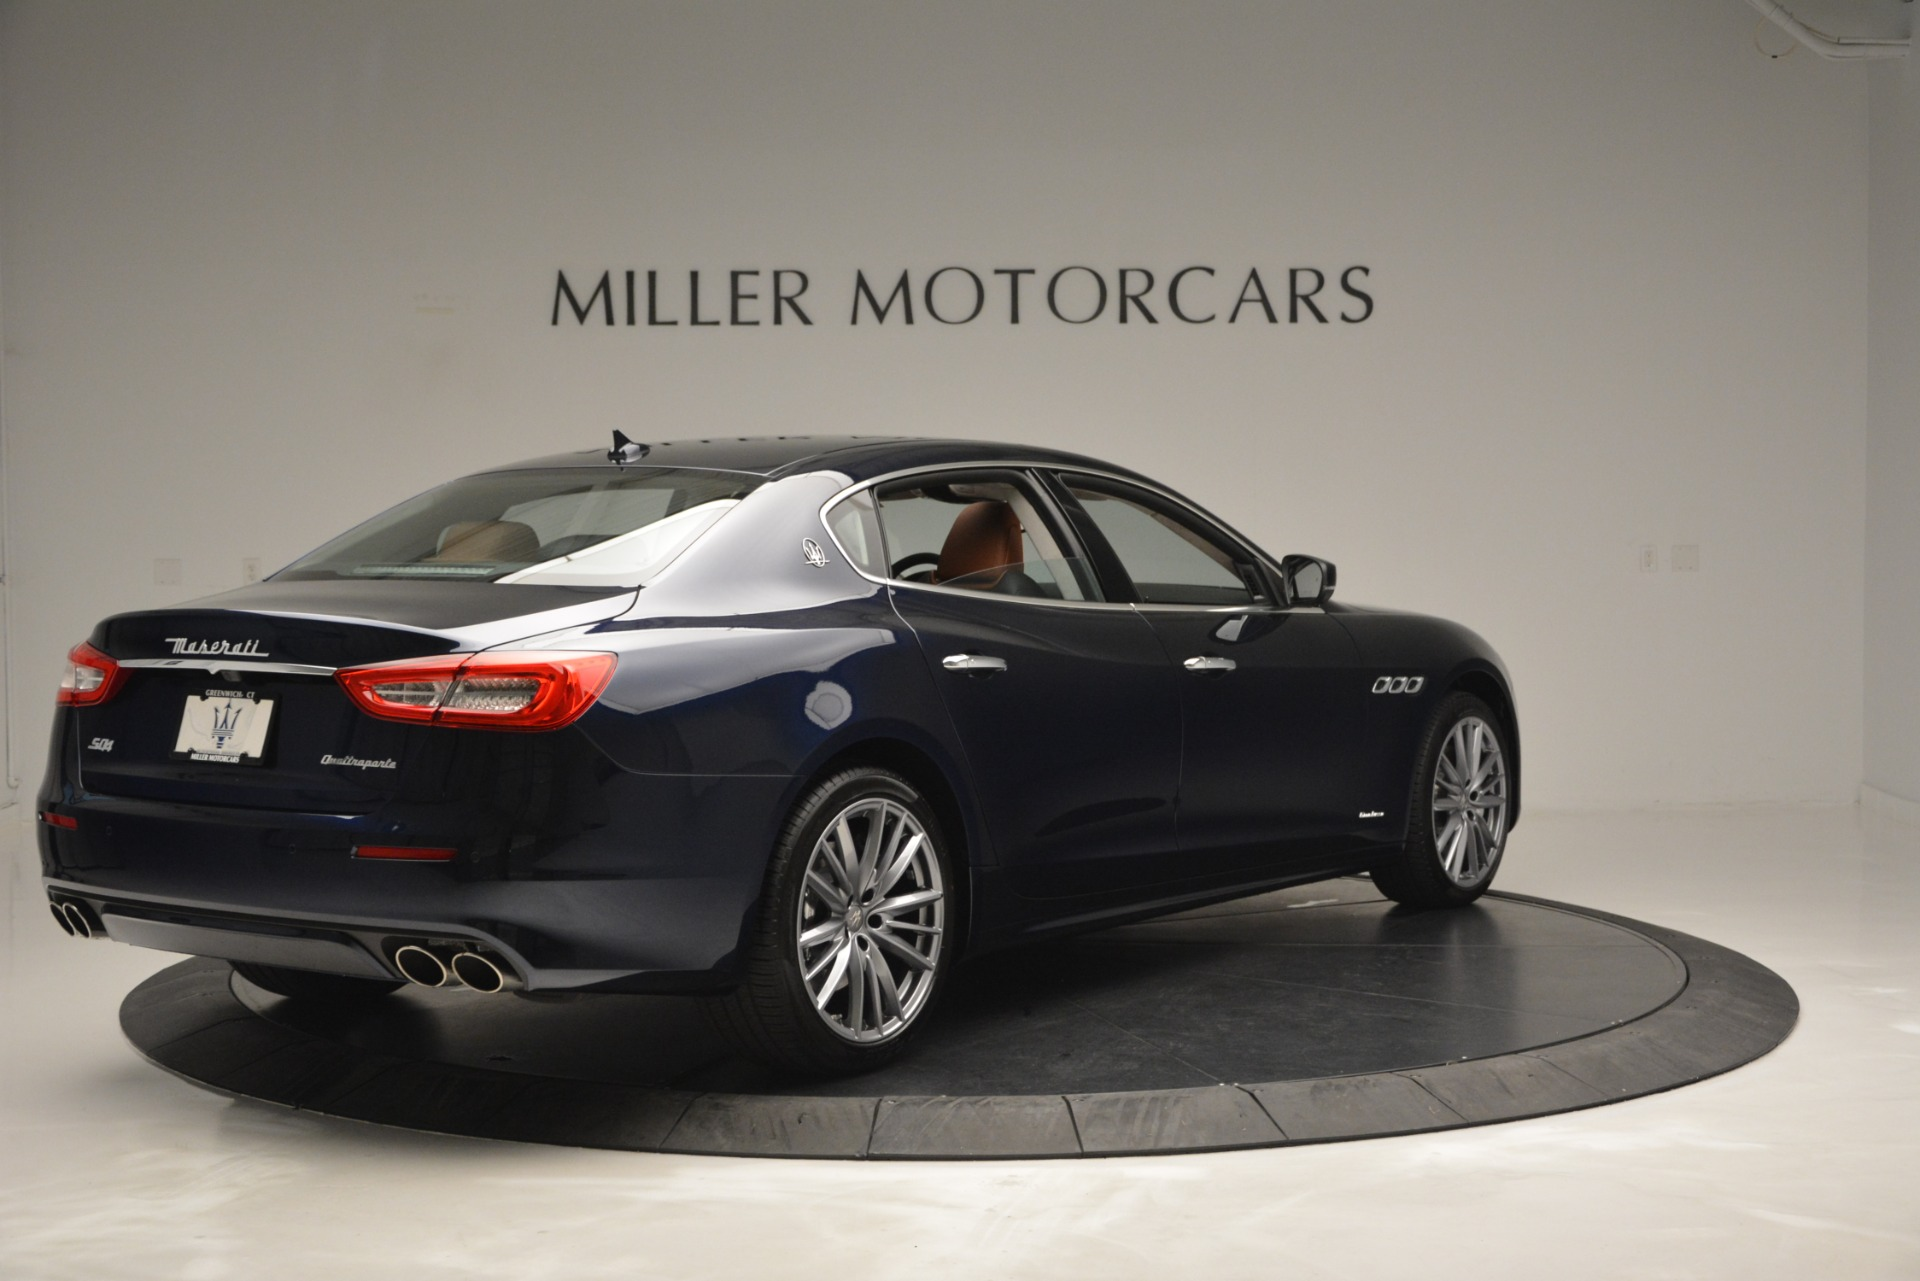 New 2019 Maserati Quattroporte S Q4 GranLusso Edizione Nobile For Sale In Greenwich, CT 2898_p12